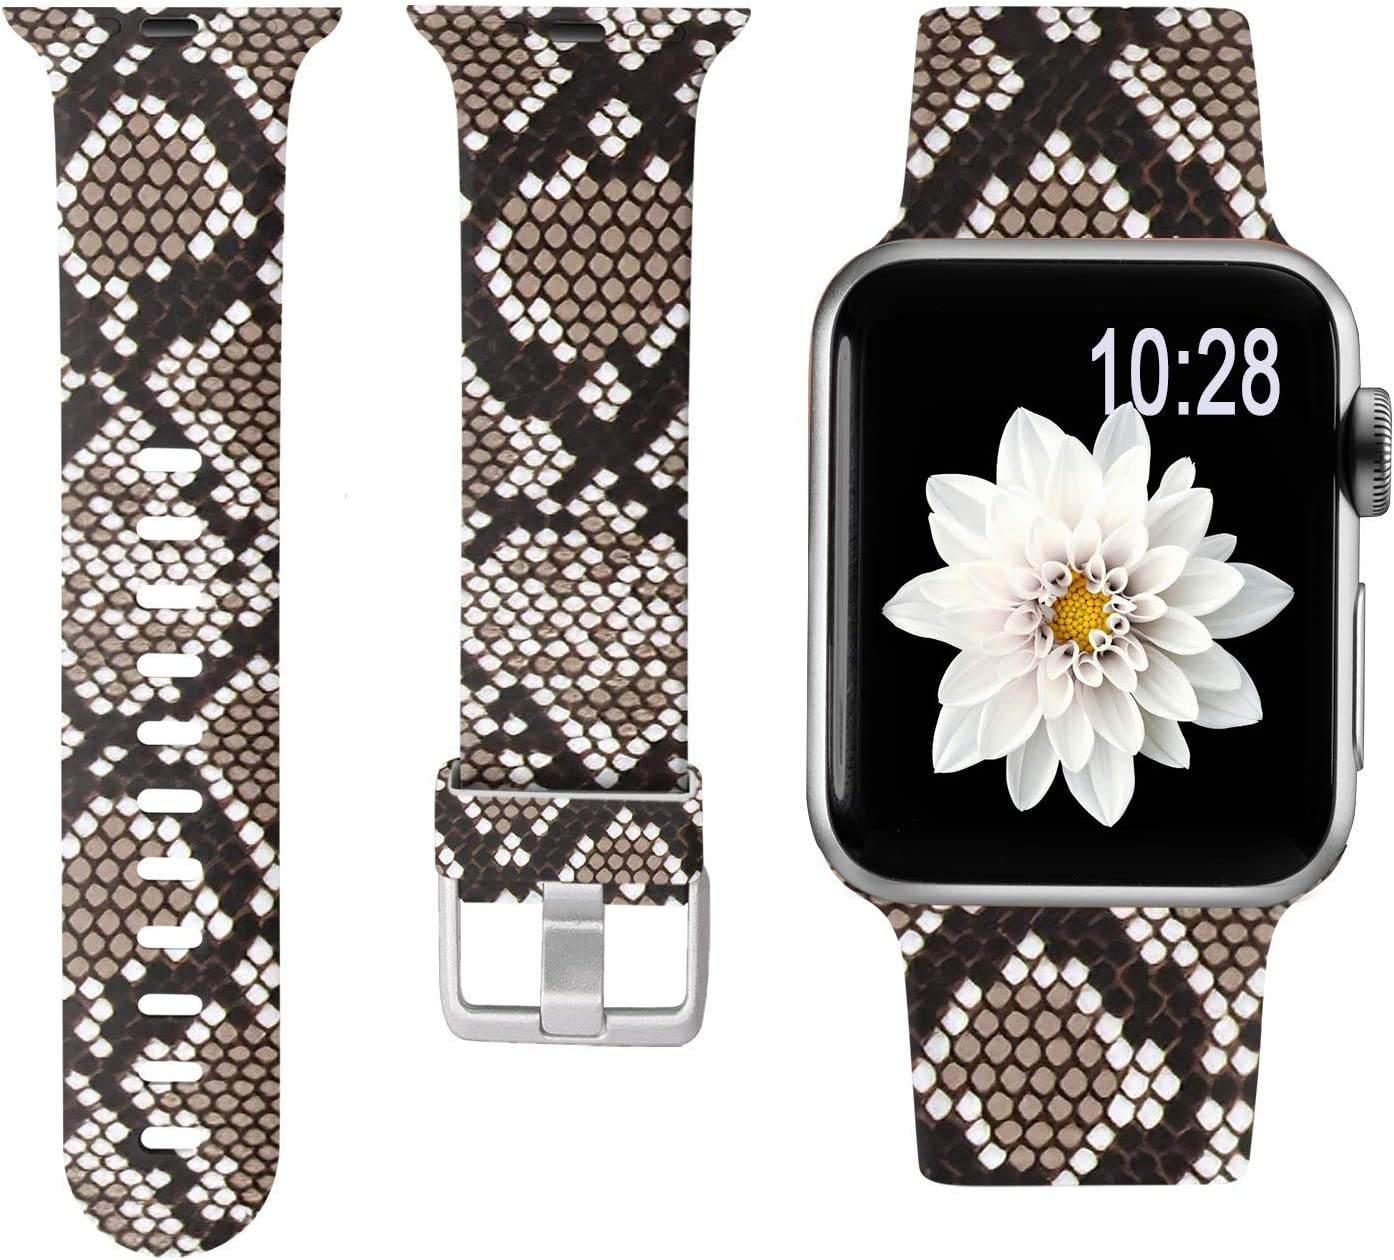 Laffav Floal Bands Compatible with Apple Watch Band 40mm 38mm iWatch SE & Series 6 & Series 5 4 3 2 1 for Women Men, Brown Snakeskin, S/M